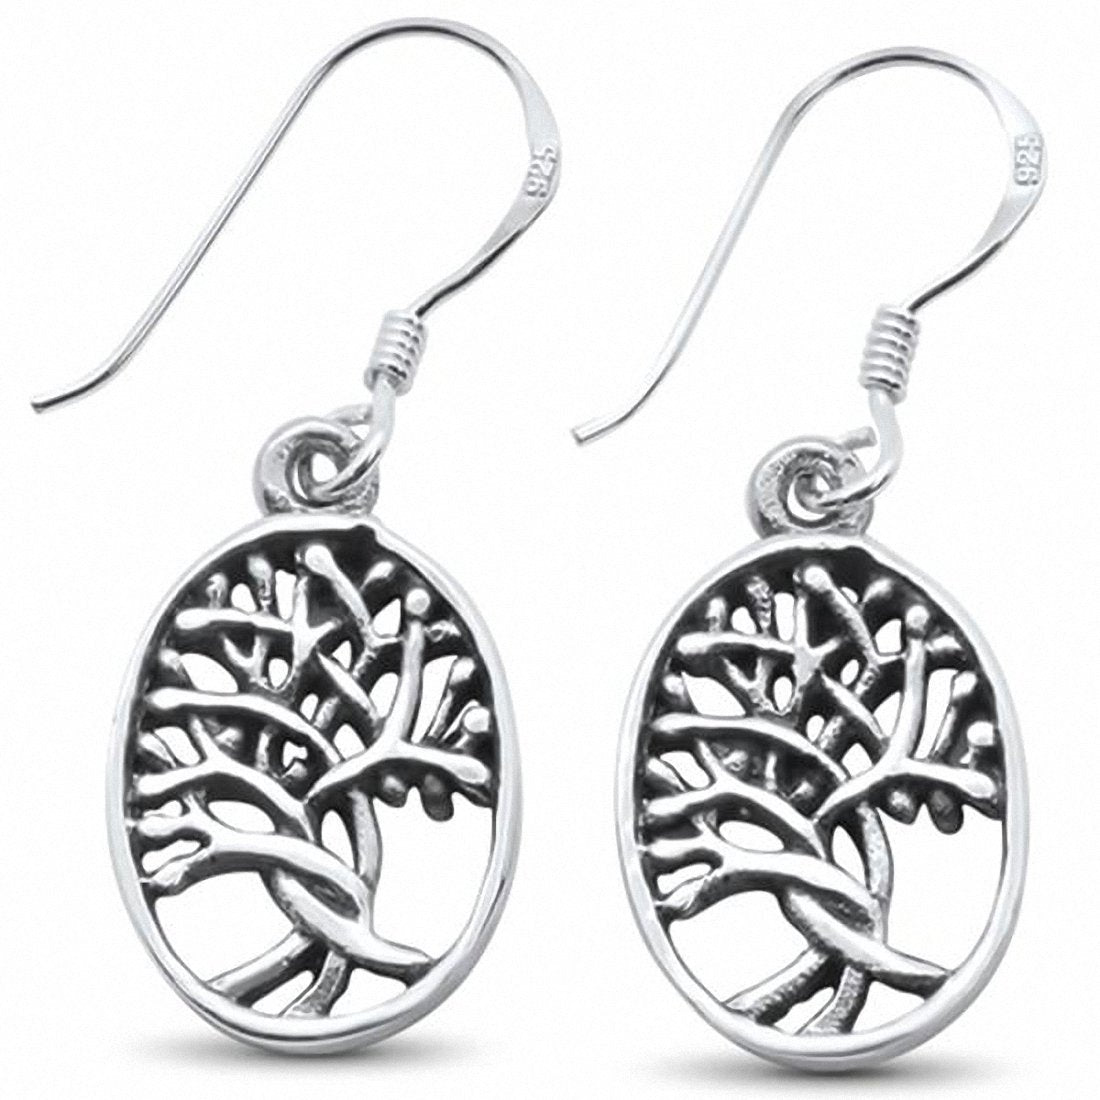 Fishhook Dangling Oval Tree of Life Earrings 925 Sterling Silver Choose Color